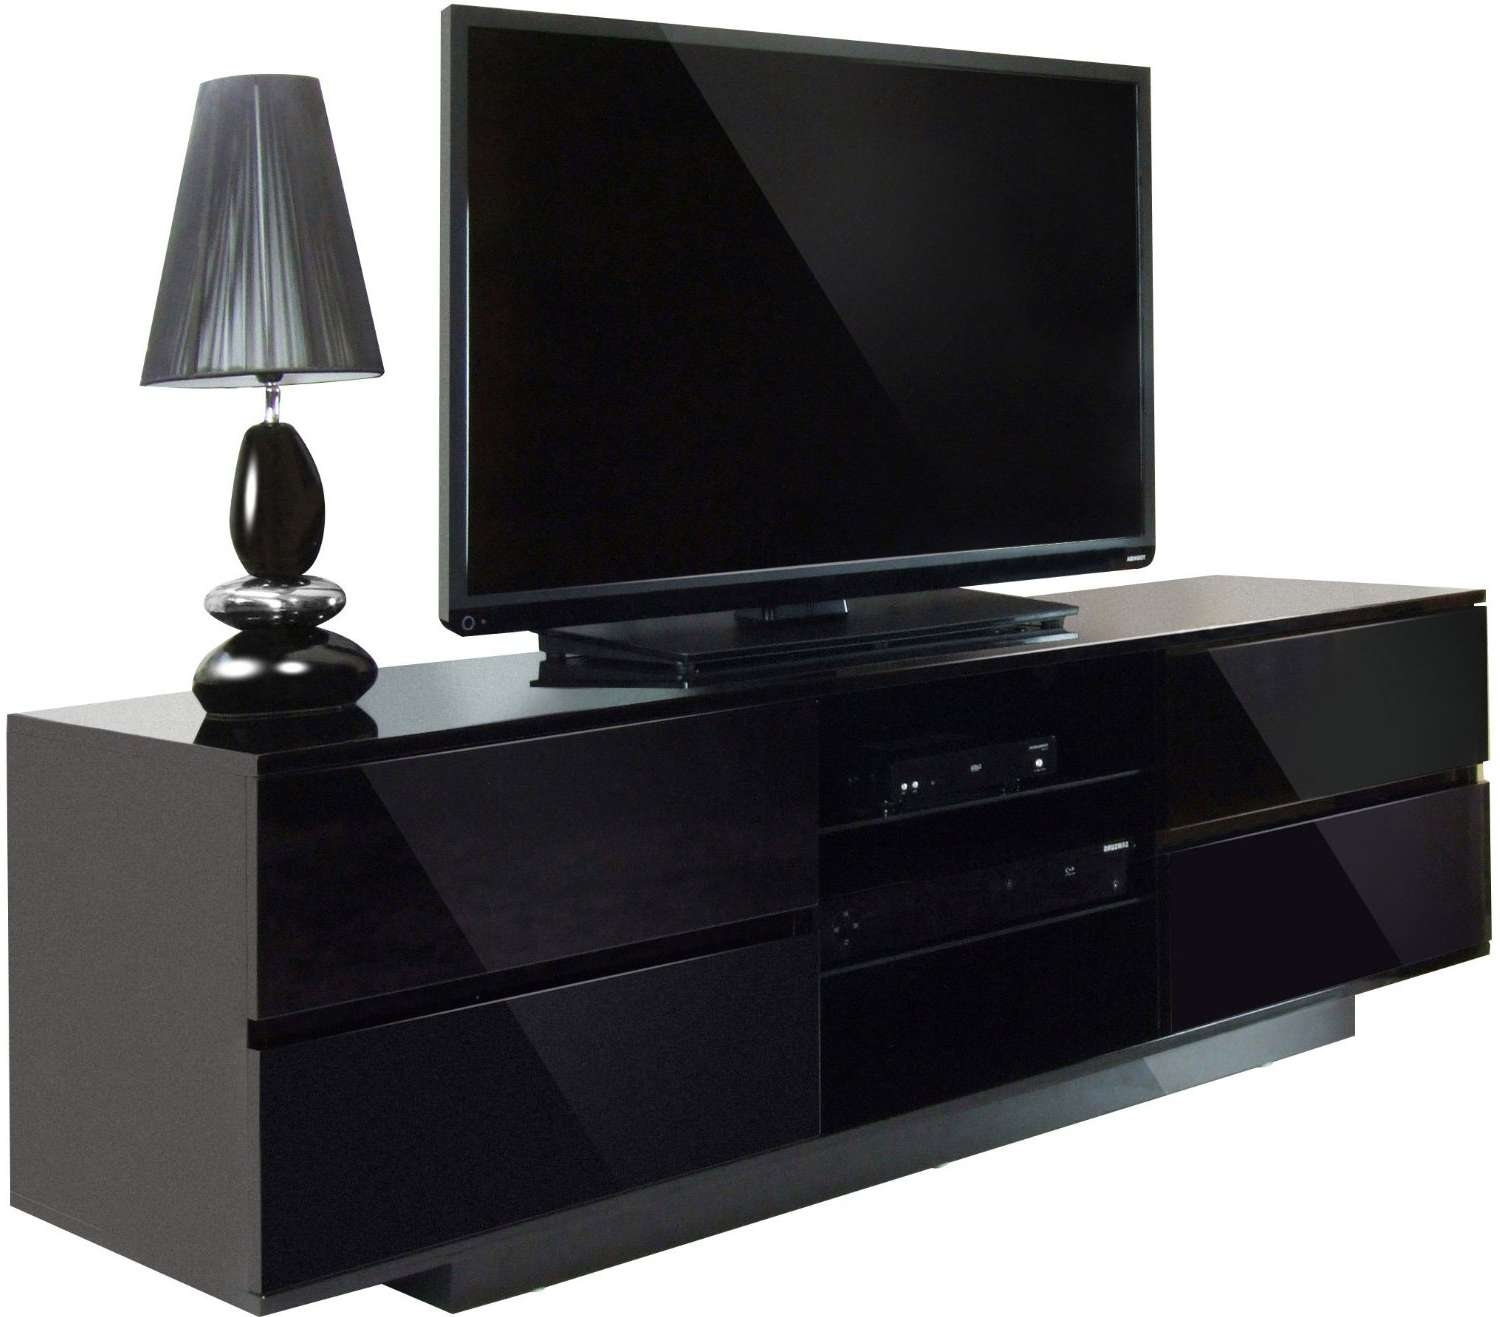 Black Led Tv On Rectangle Black Wooden Short Narrow Storage In Black Tv Stands With Drawers (View 10 of 15)